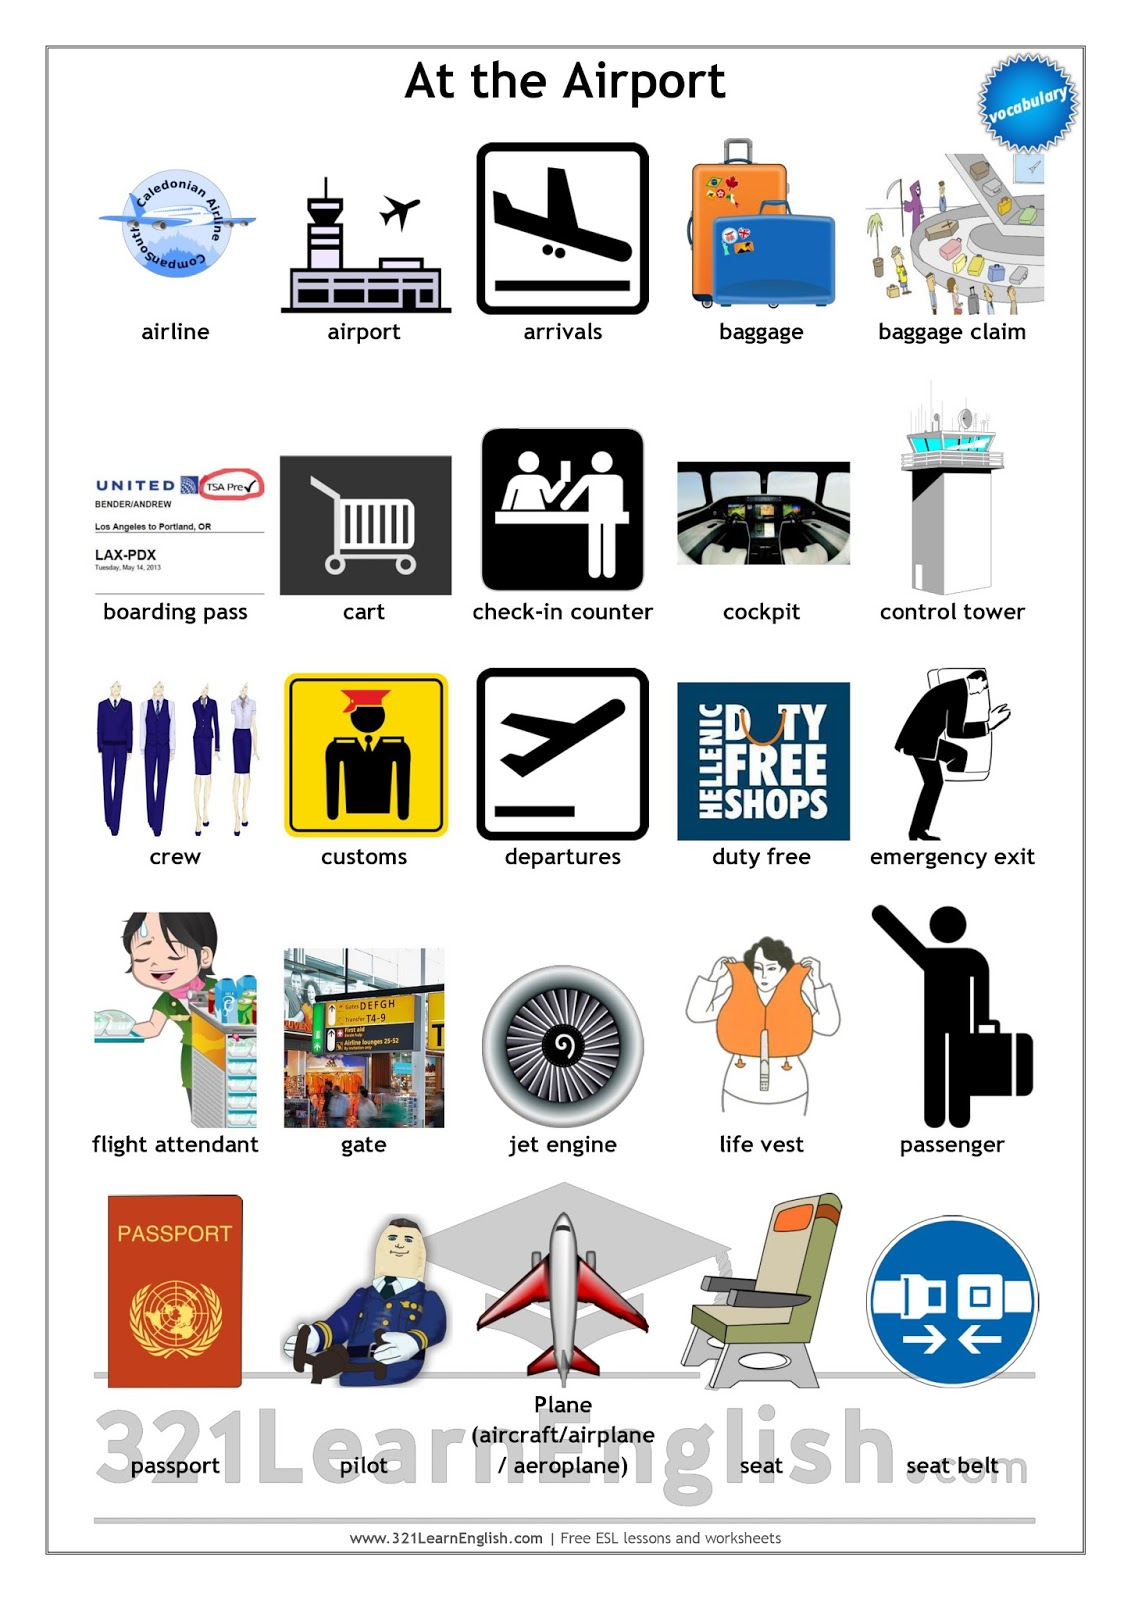 321 Learn English Com Vocabulary At The Airport Level B1